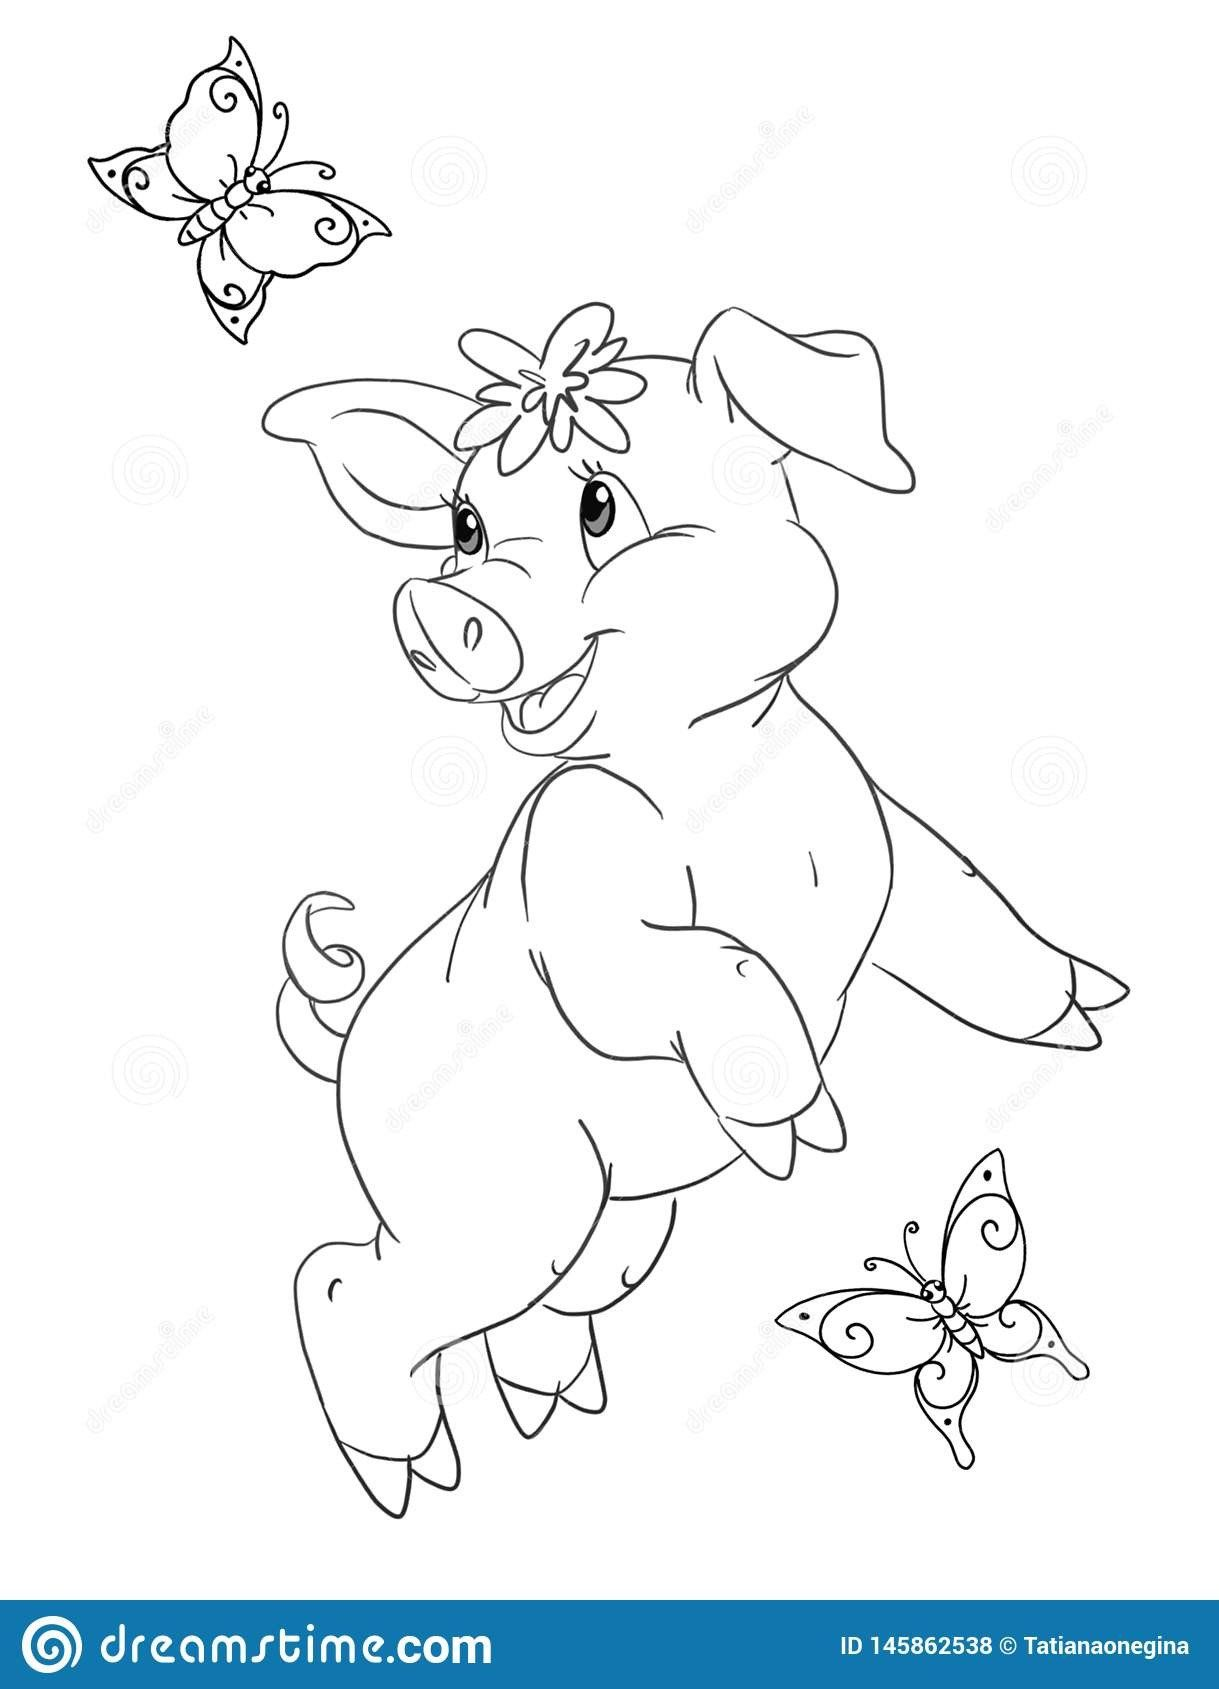 49++ Cute pig coloring pictures info